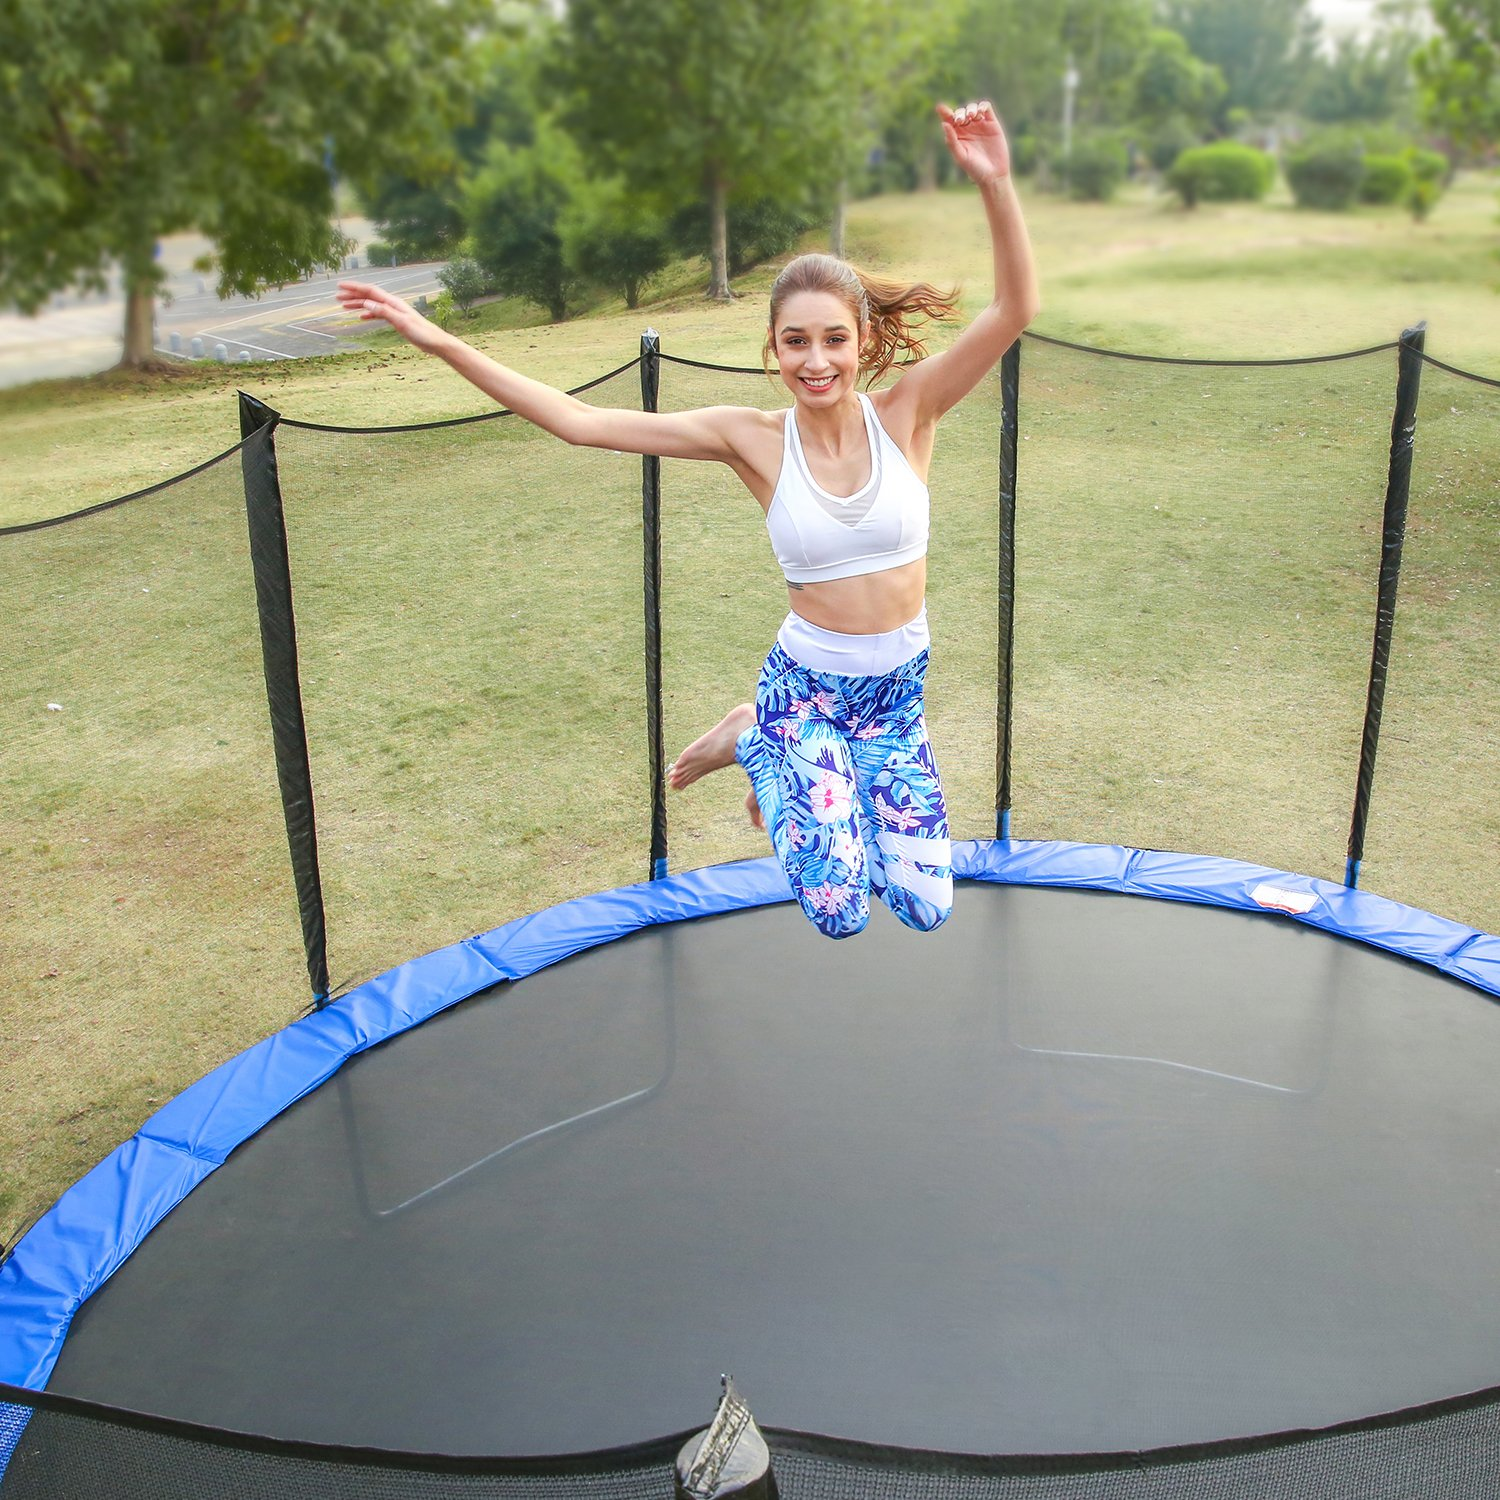 Ziema 12ft Outdoor Kids Trampolines with Enclosure Net US Stock